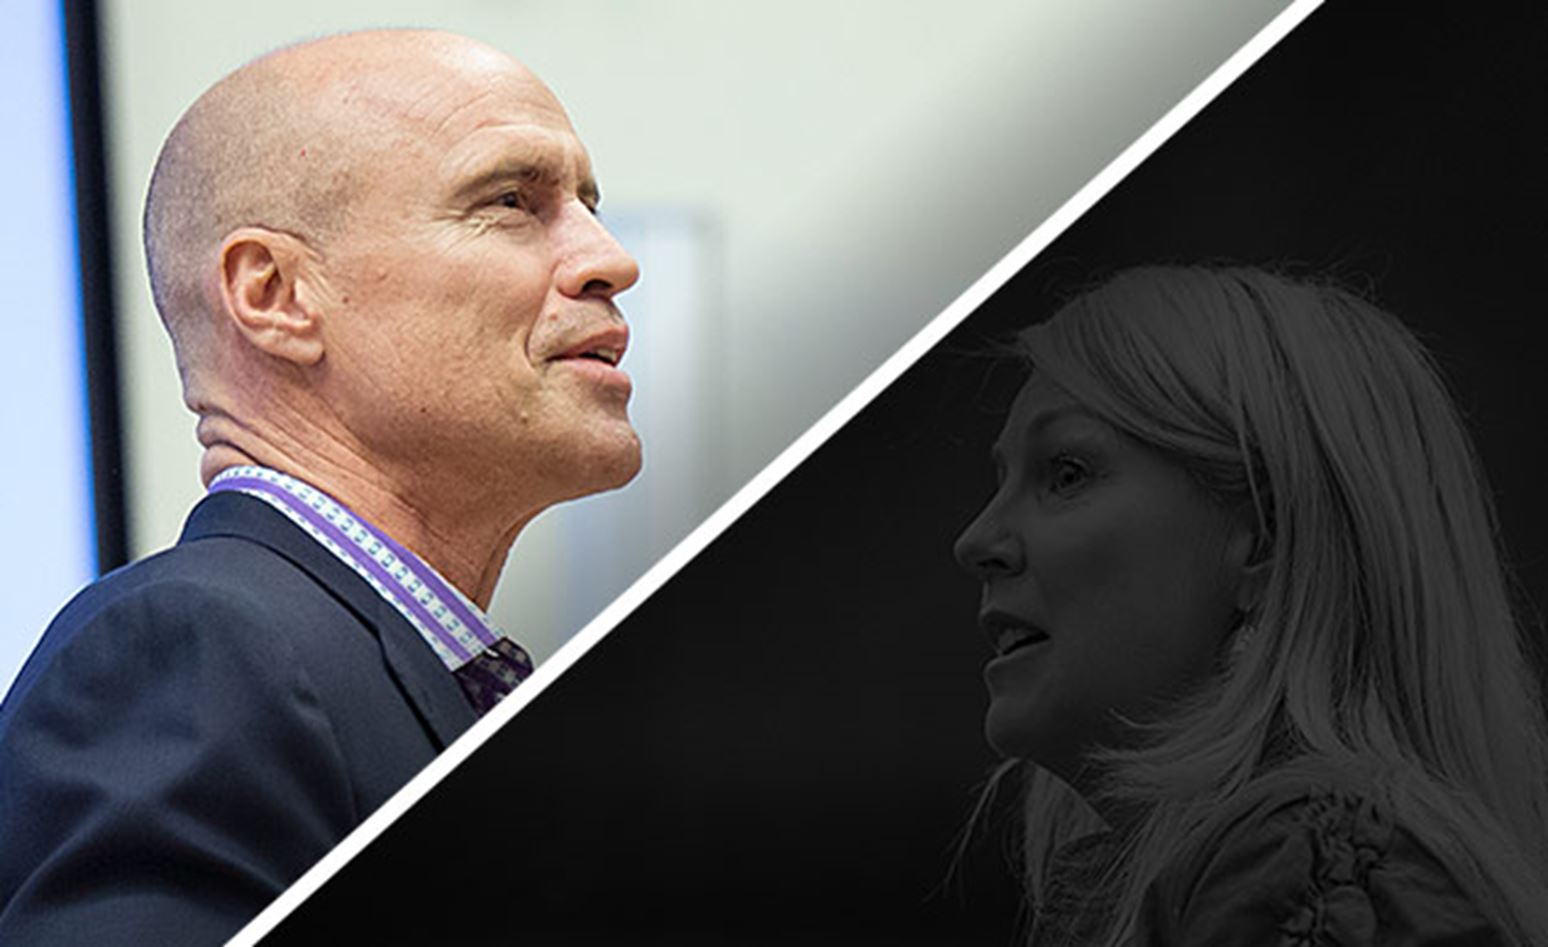 HBA Candour Conference: Mark Messier and the attributes of leadership